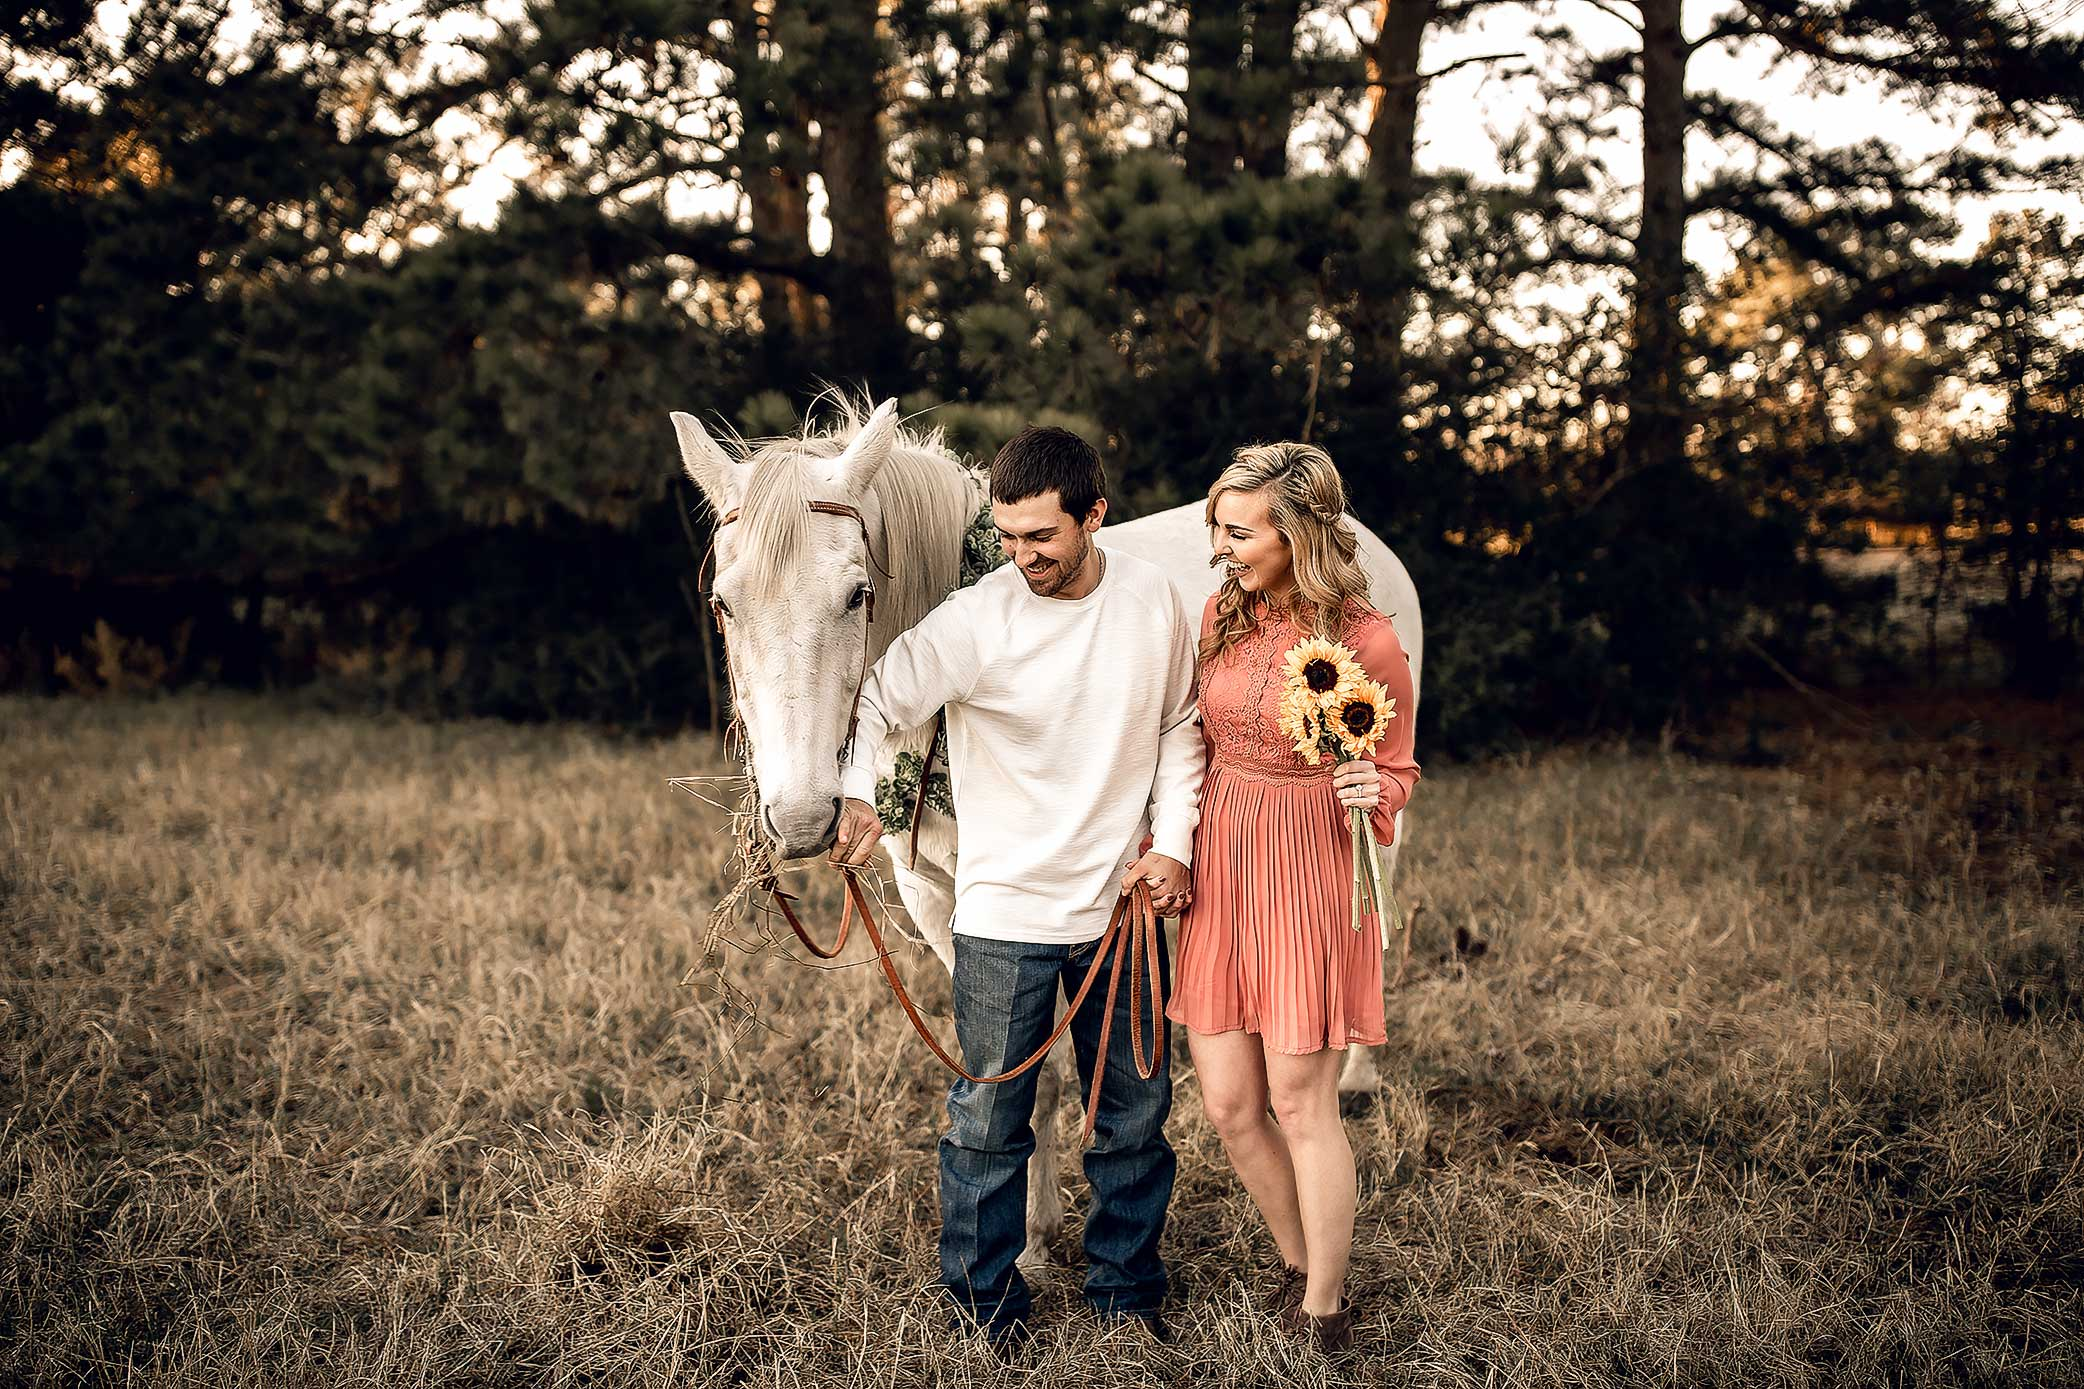 shelby-schiller-photography-couples-outdoor-with-boho-horse-and-rust-colored-dress.jpg